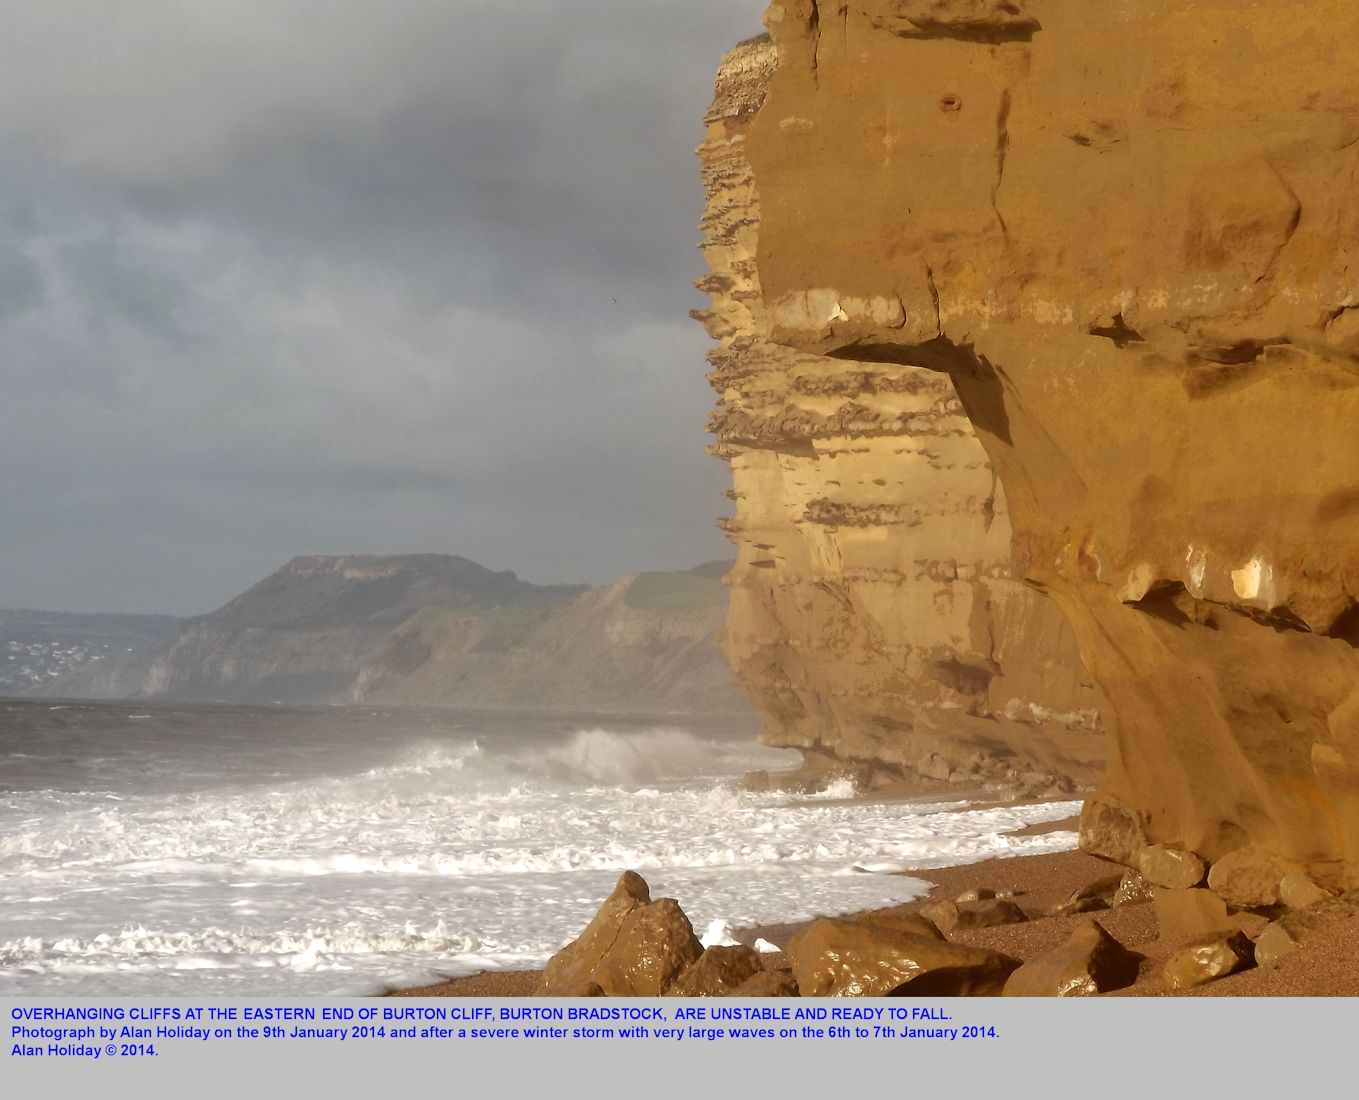 Dangerously overhanging cliffs, that have been undercut by the sea, eastern Burton Cliff, Burton Bradstock, Dorset, 9th January 2014, photograph by Alan Holiday